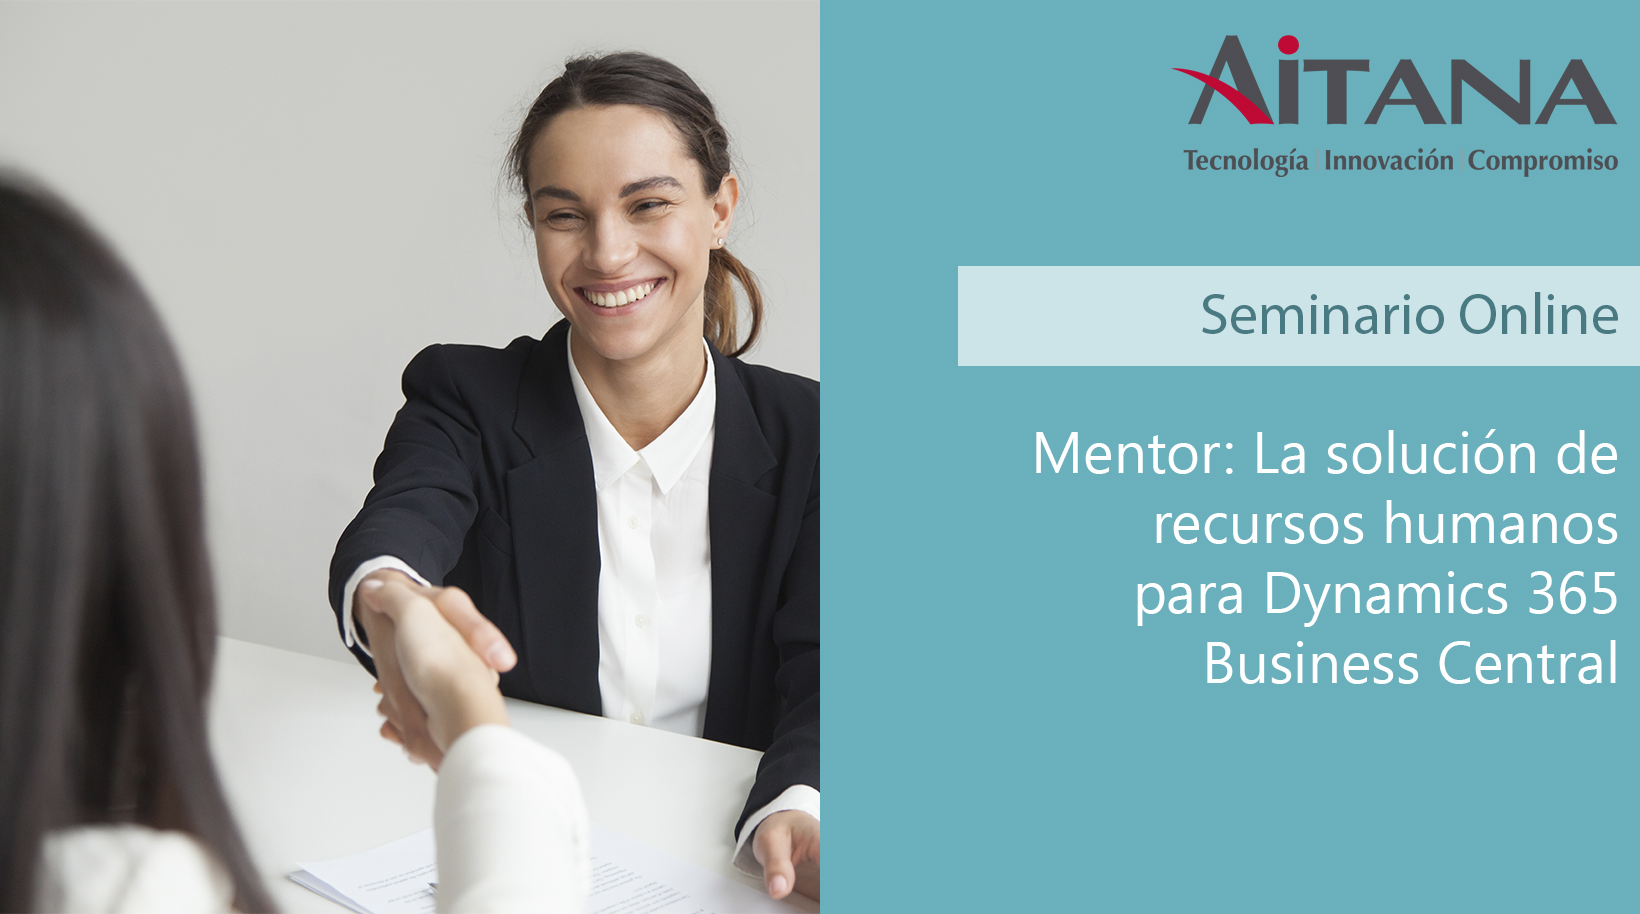 Webinar - Mentor para Dynamics 365 Business Central